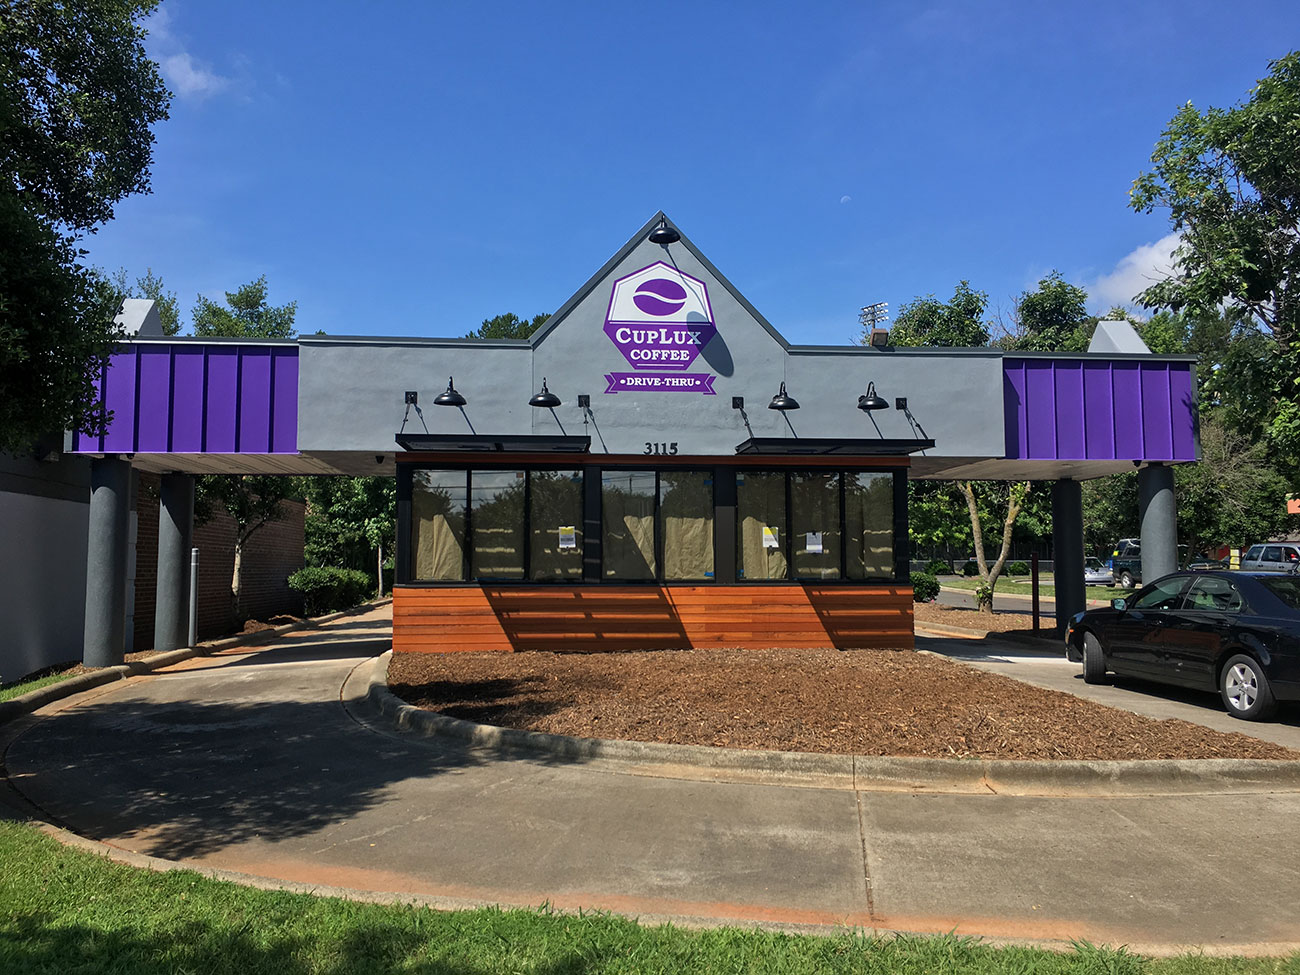 Charlotte is getting its first ever drive-thru-only coffee shop